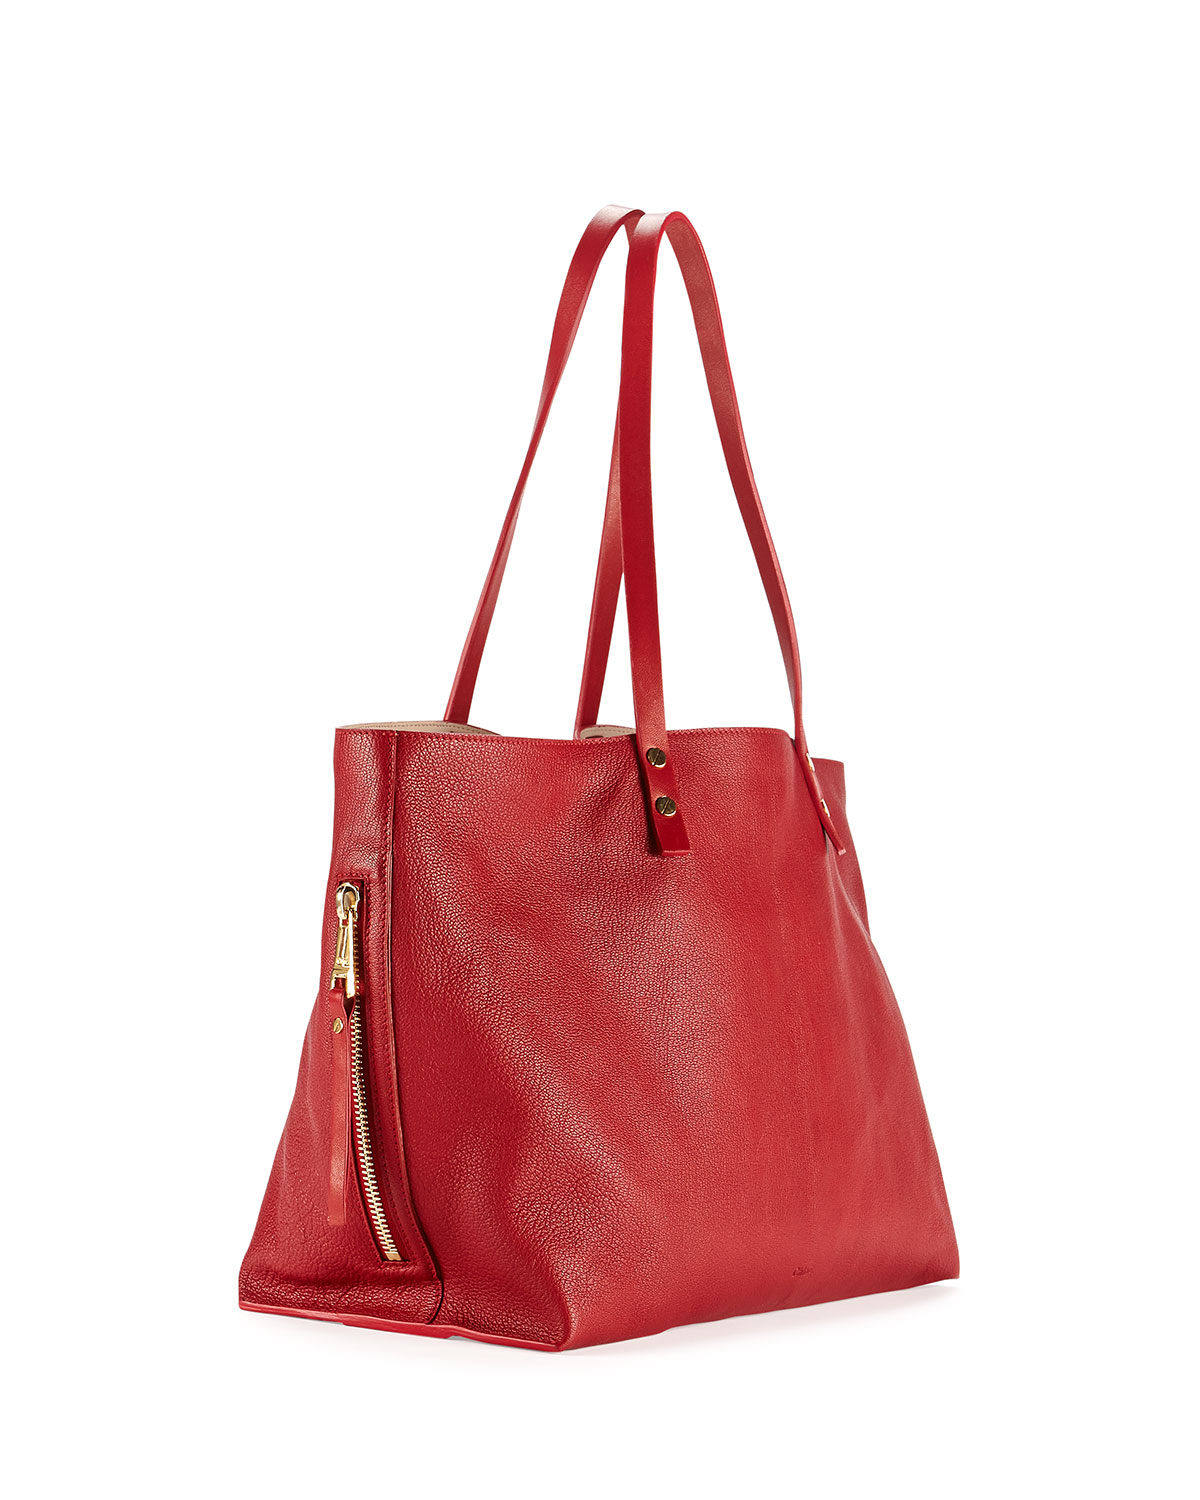 9eb37766757 Lyst - Chloé Dilan East-West Leather Tote Bag in Red